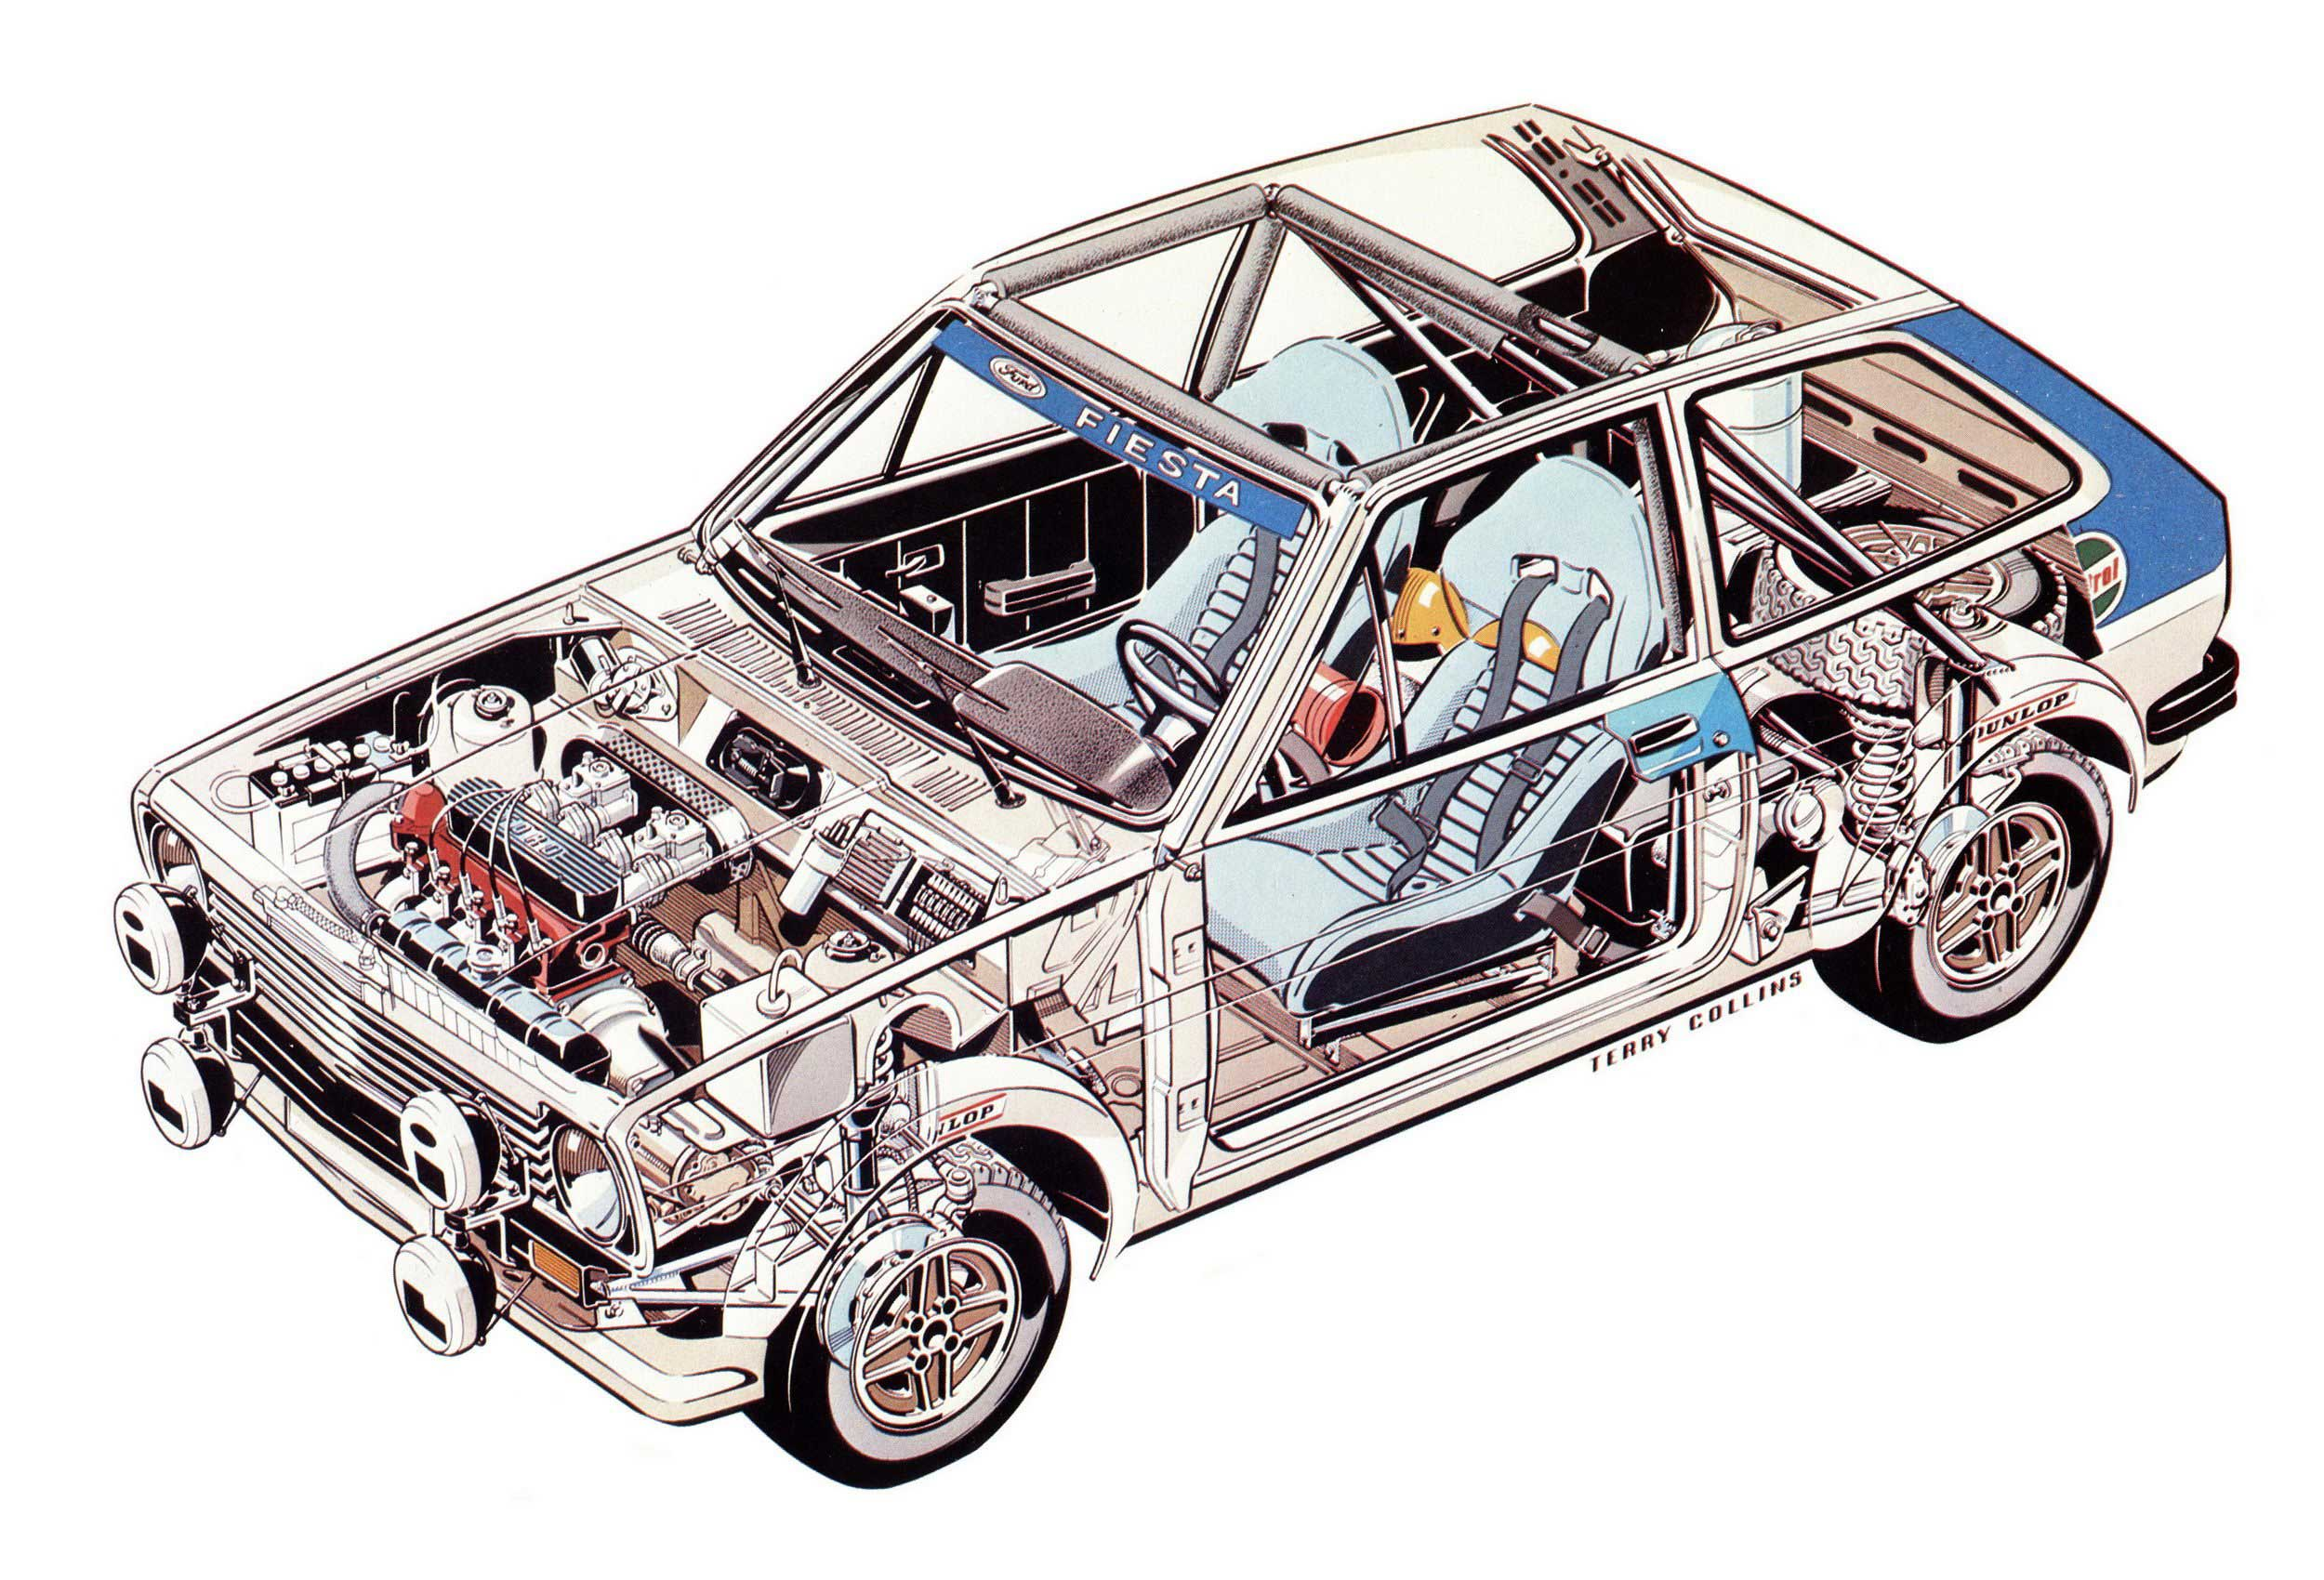 Ford Fiesta XR2 Rally car cutaway drawing